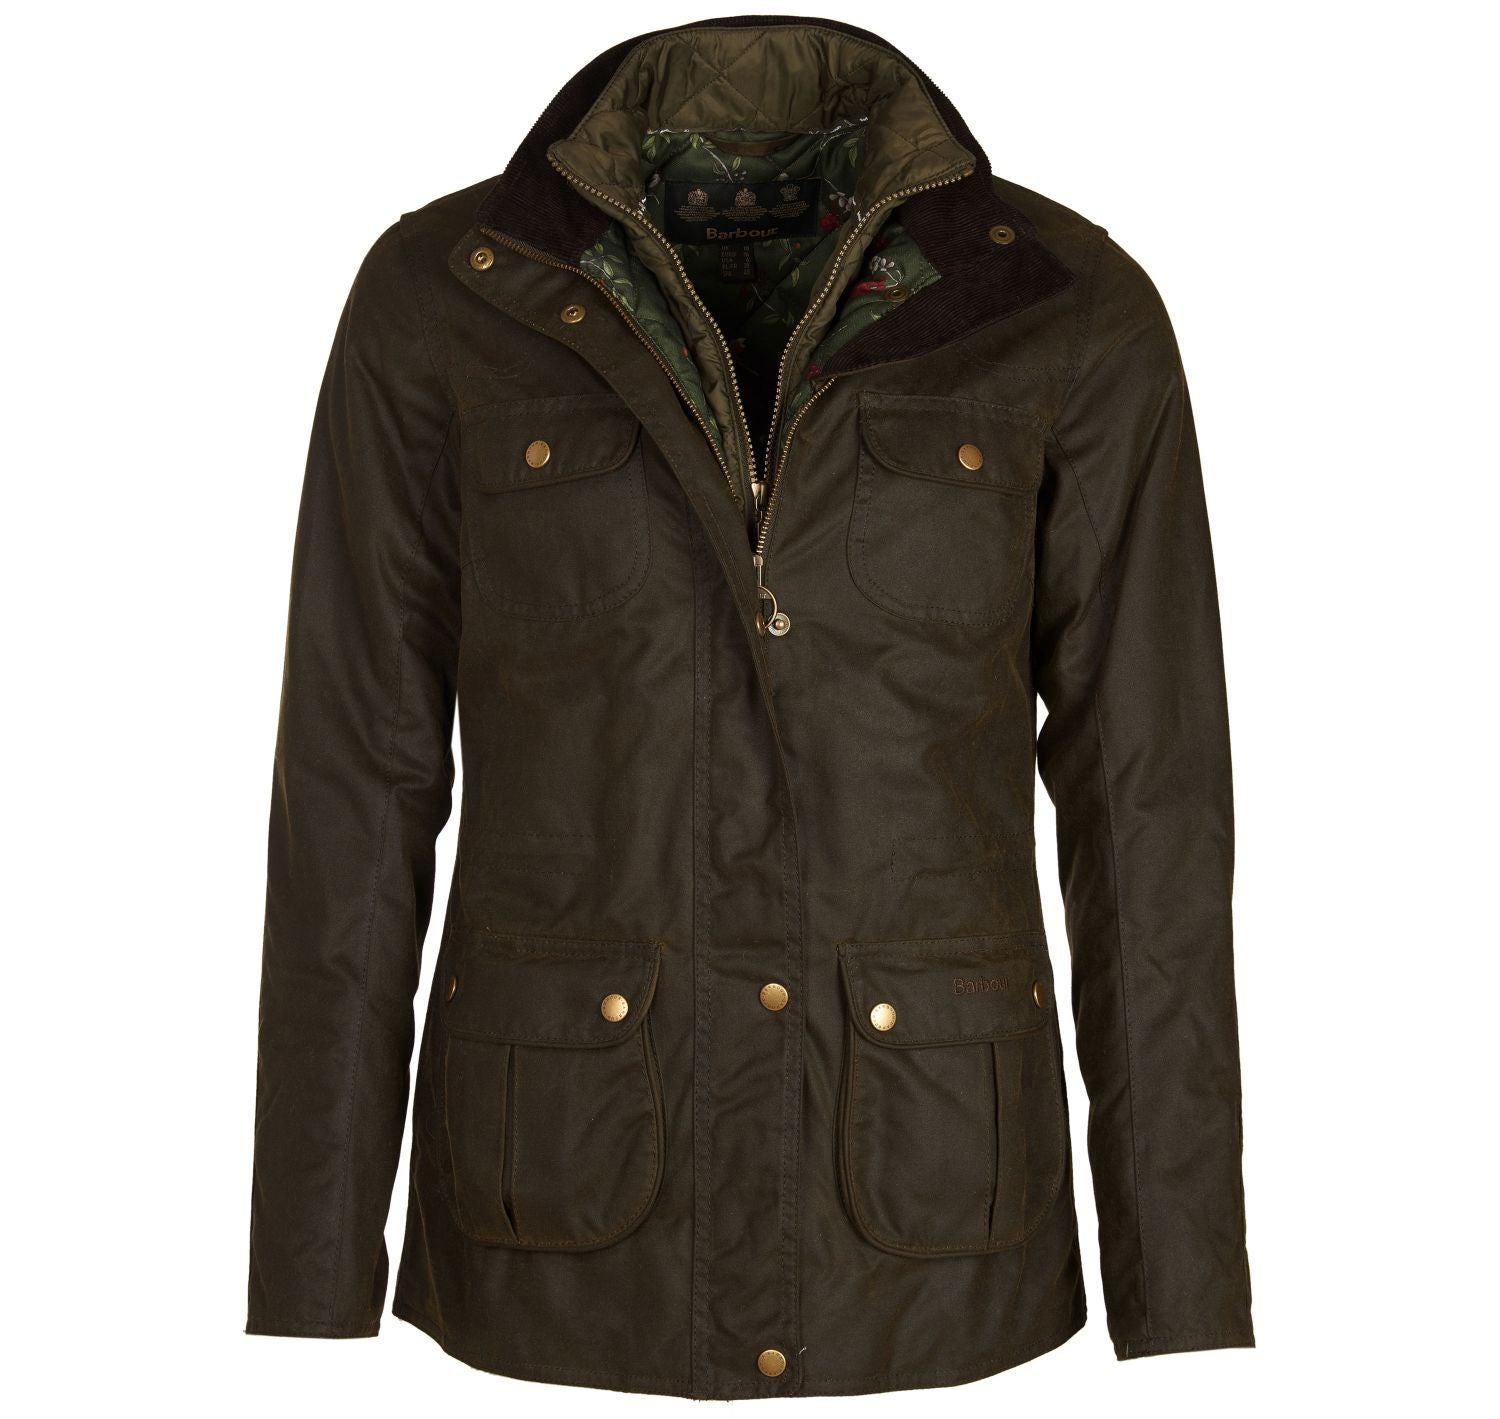 Barbour Chaffinch Waxed Cotton Jacket - North Shore Saddlery